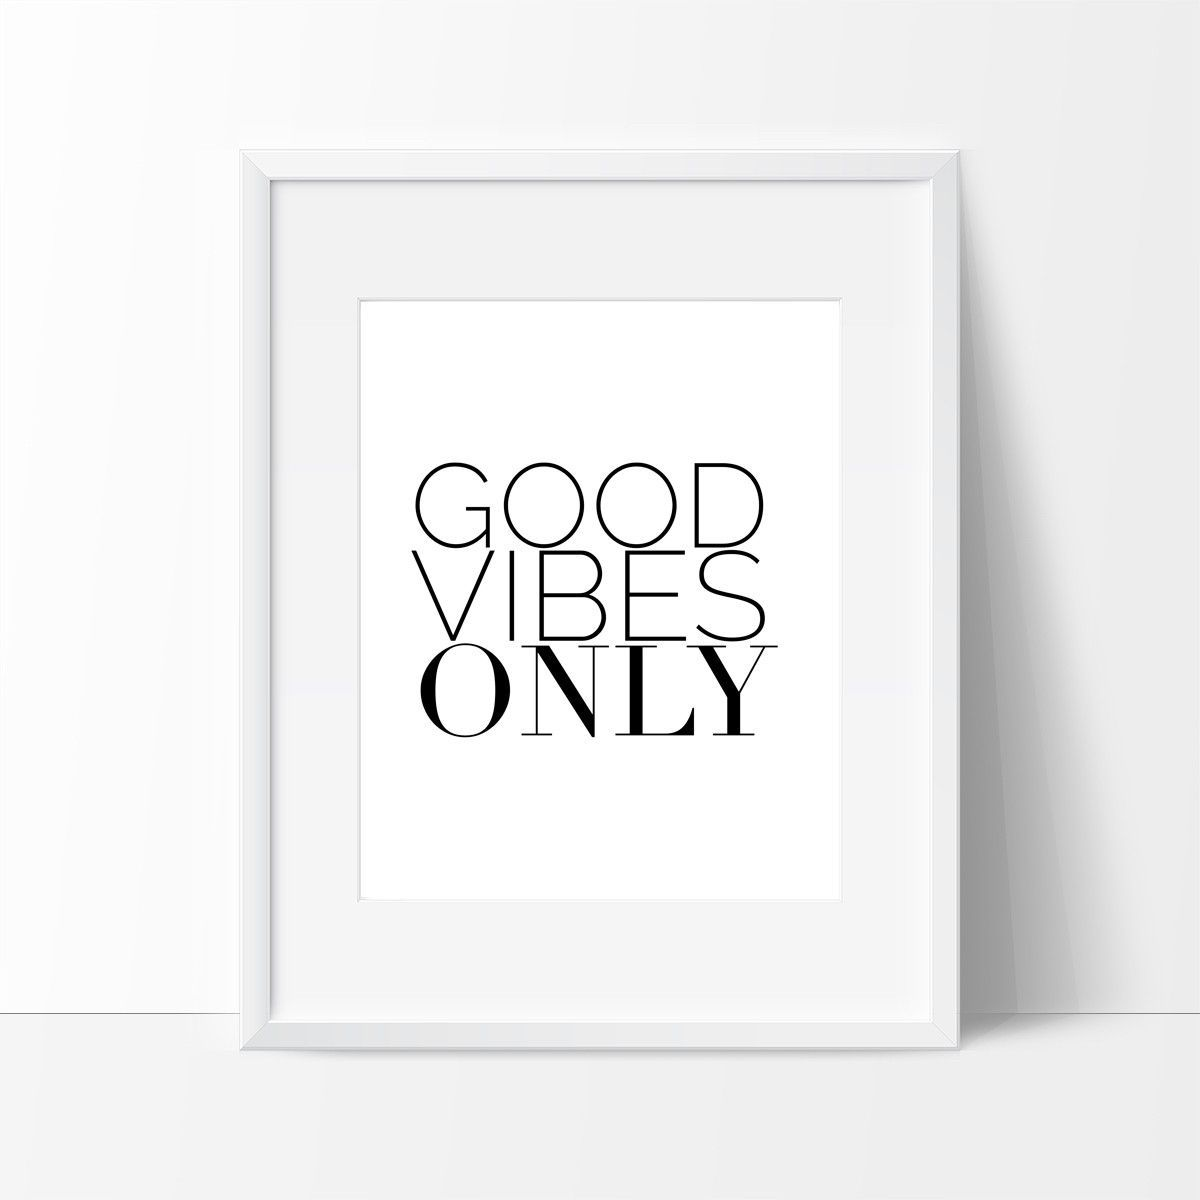 Good vibes only home black and white motivational quote for college